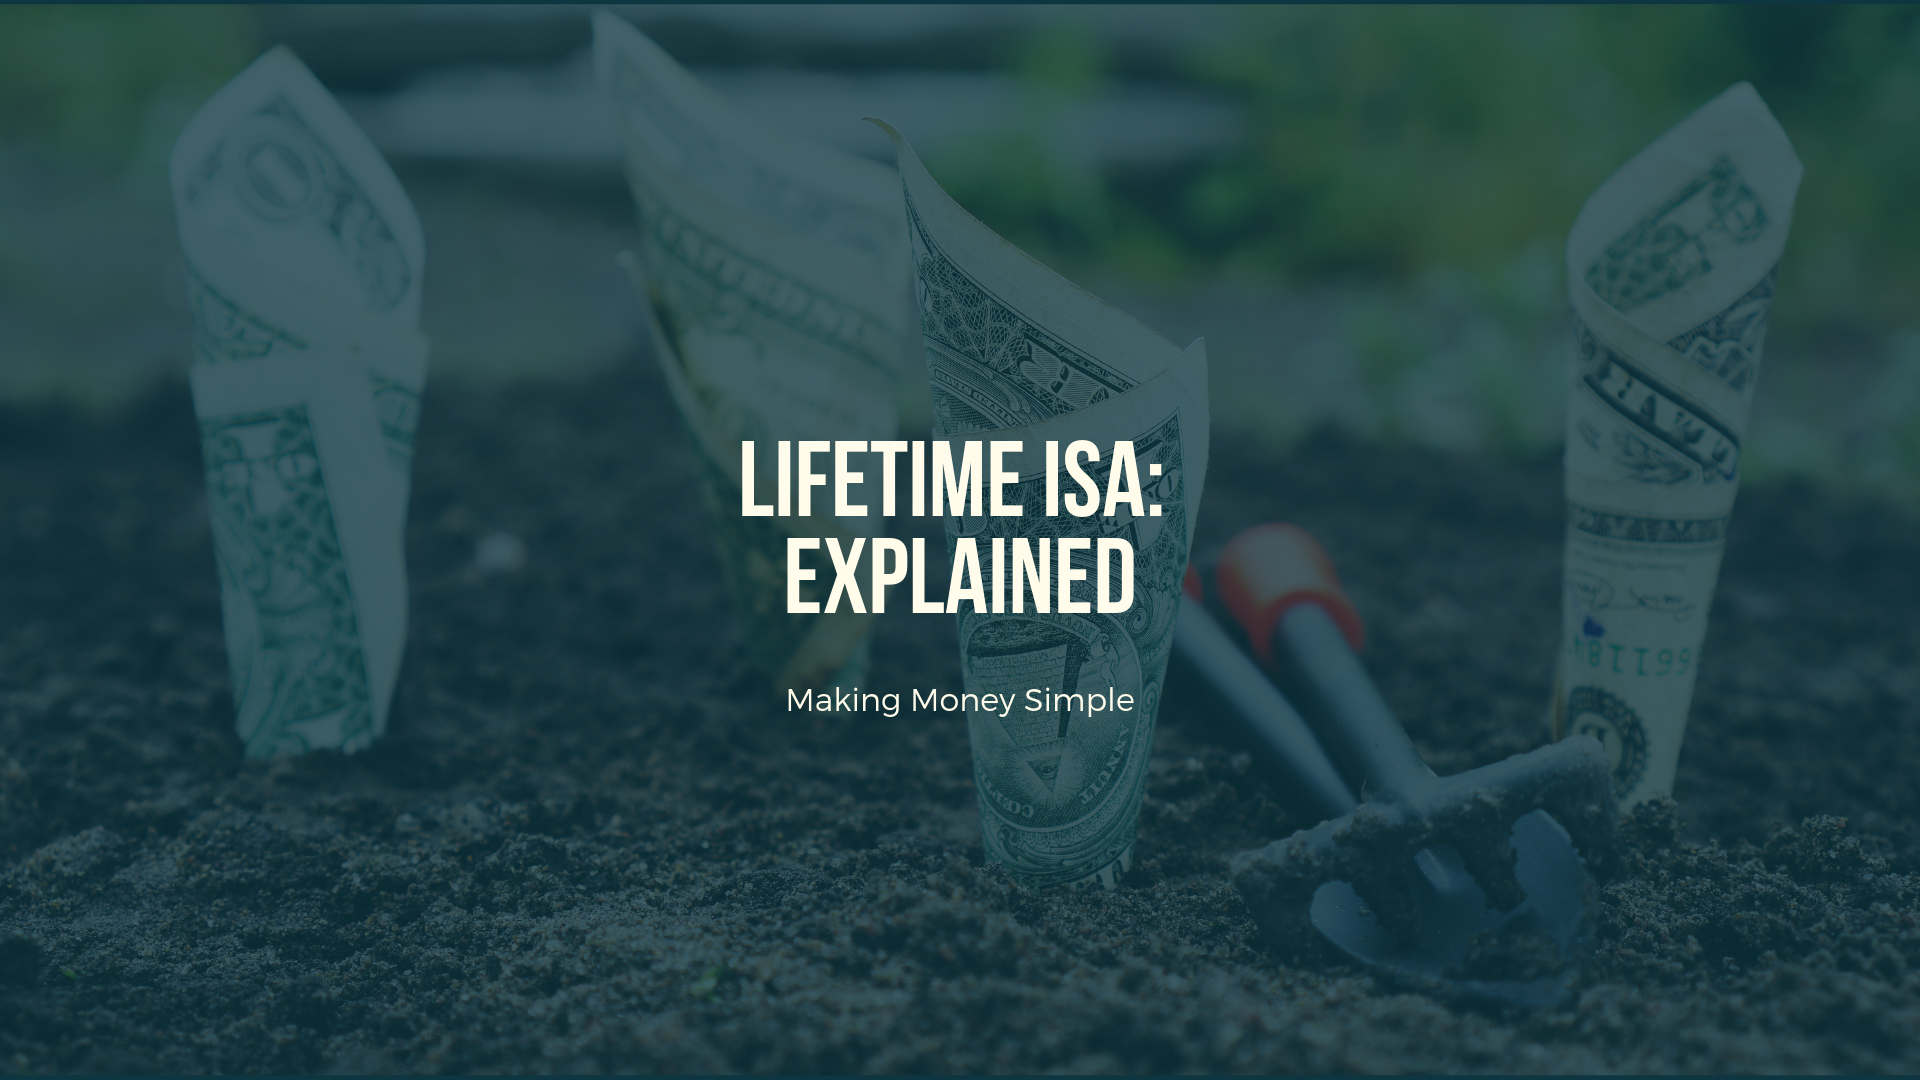 Lifetime ISA Explained